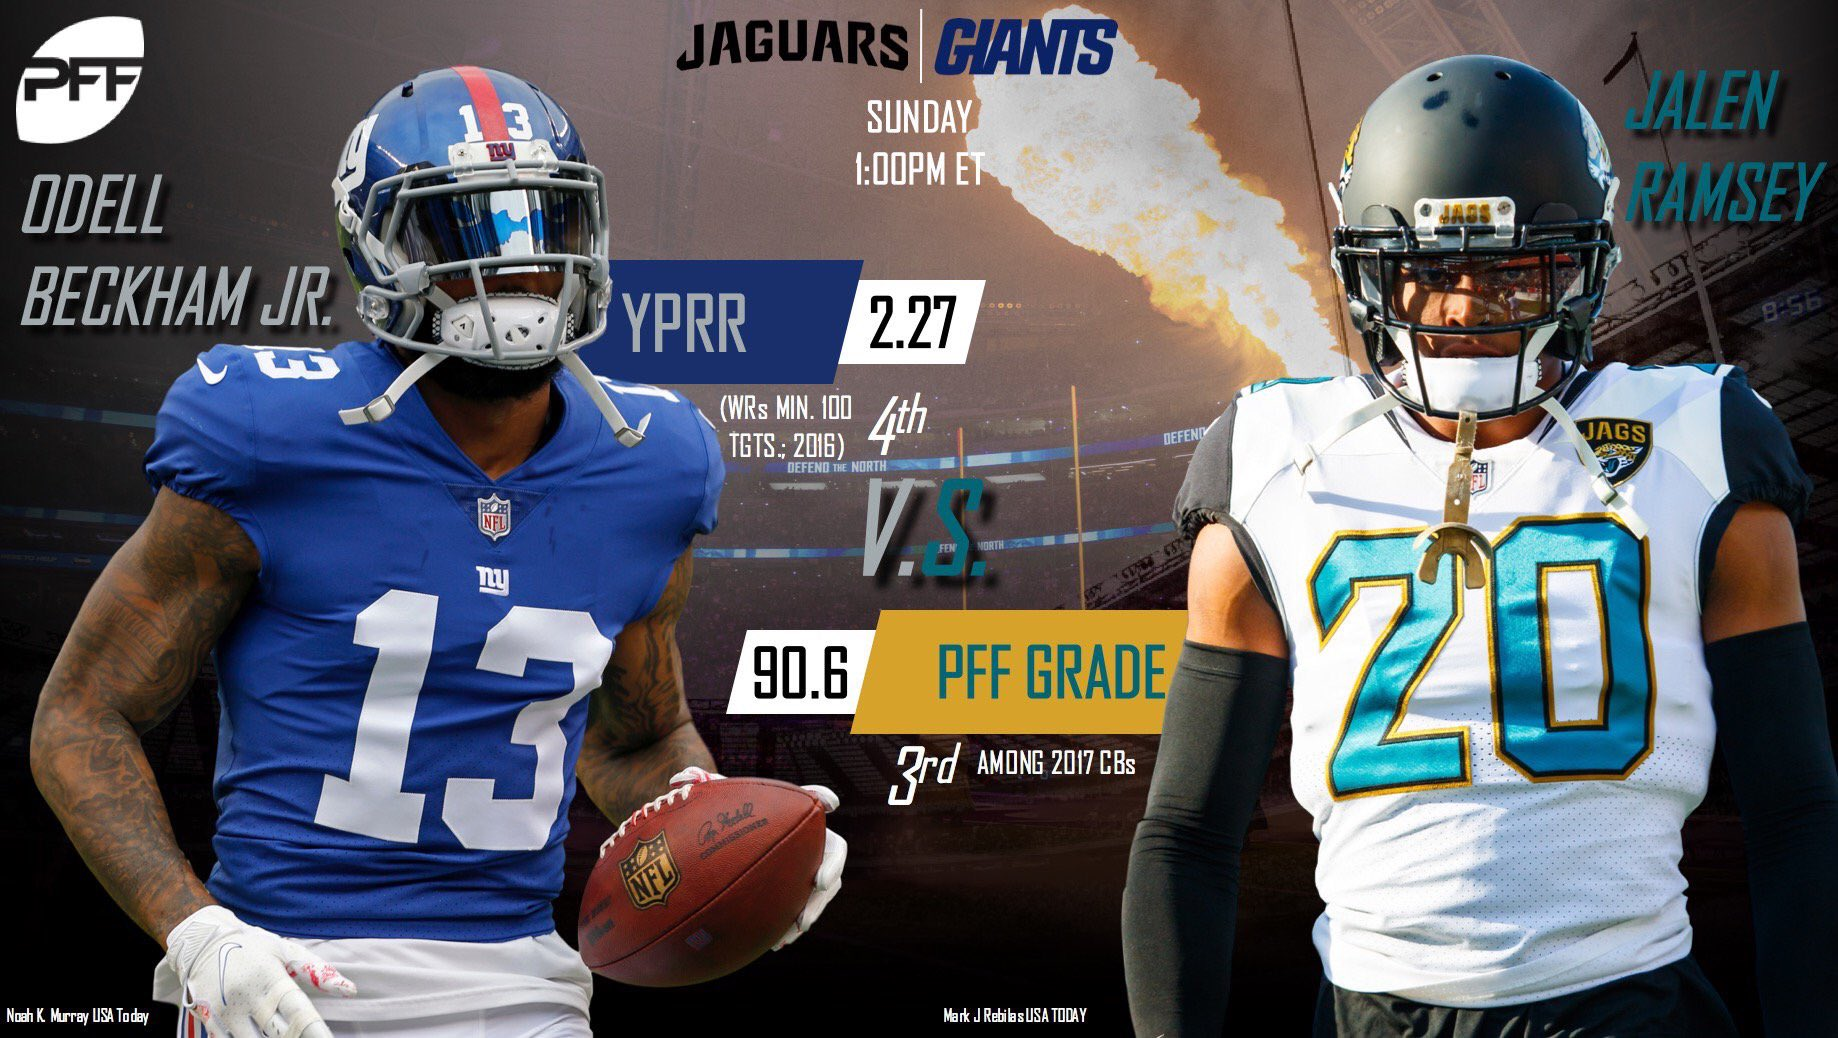 The matchup to watch week 1 #JAXvsNYG https://t.co/pNfryixAVX